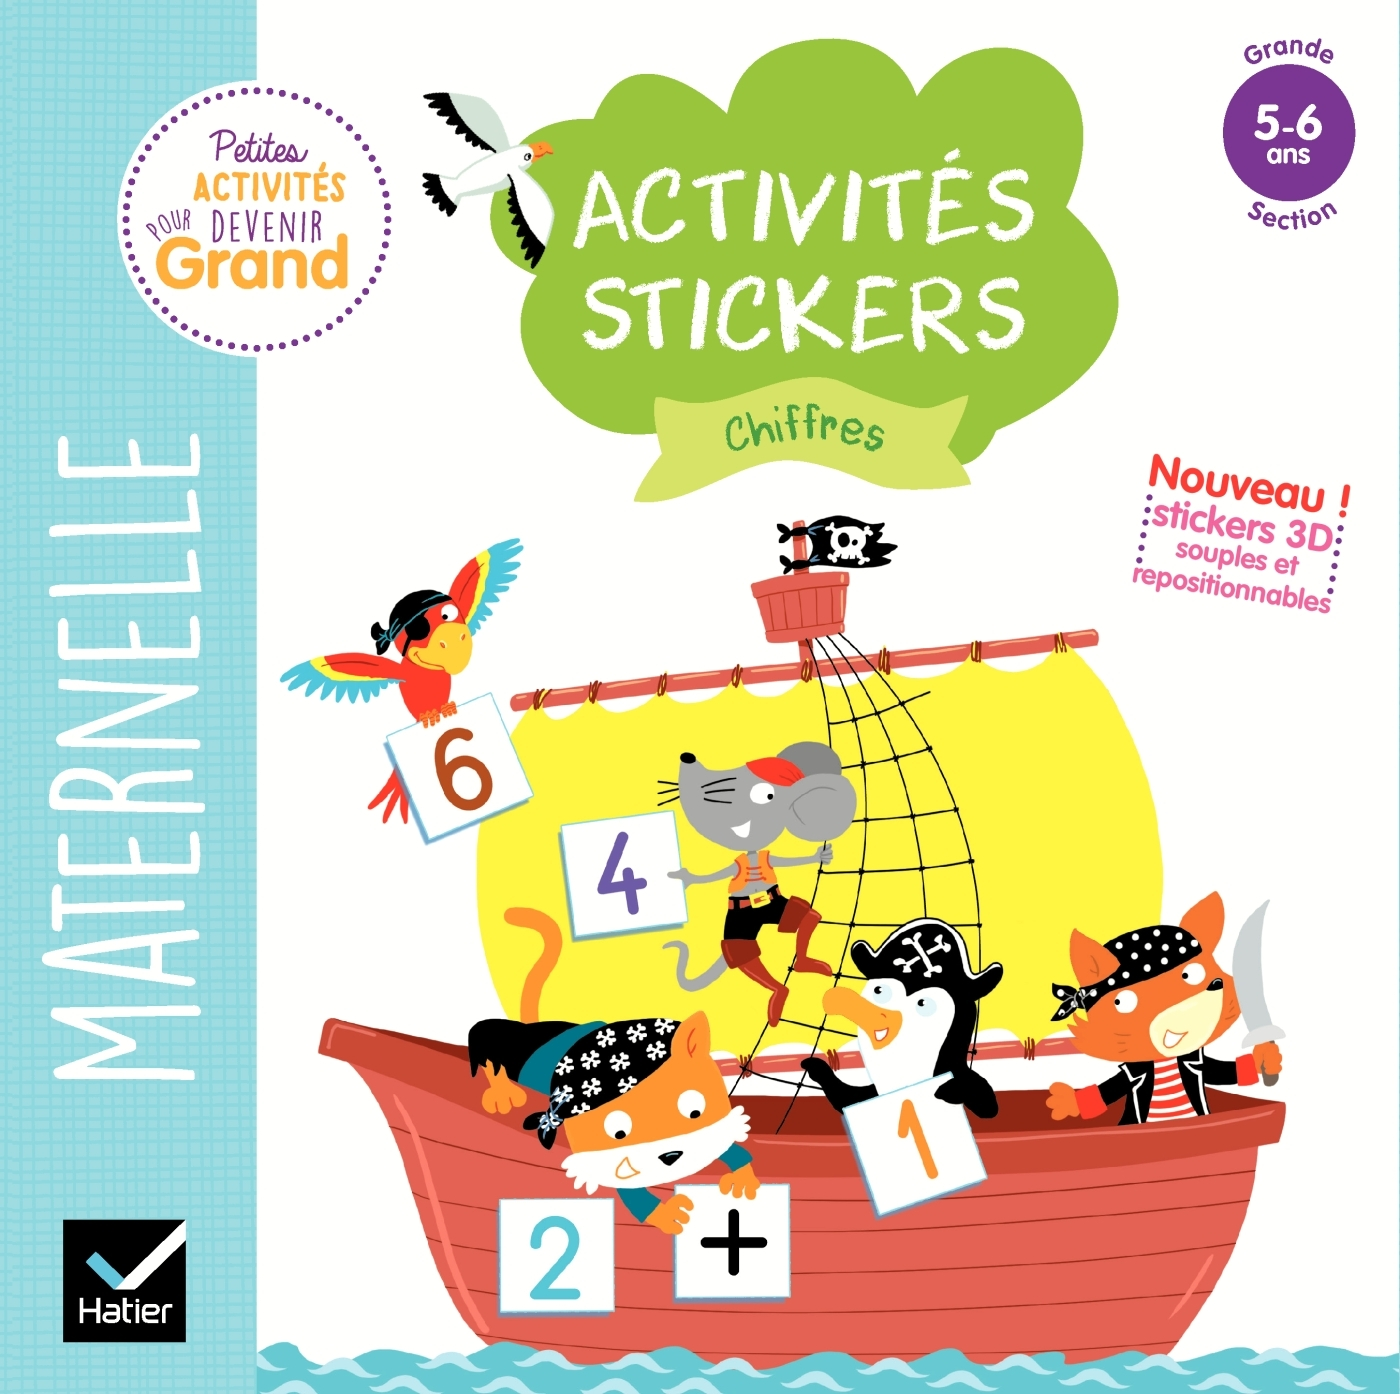 ACTIVITES STICKERS - CHIFFRES GRANDE SECTION